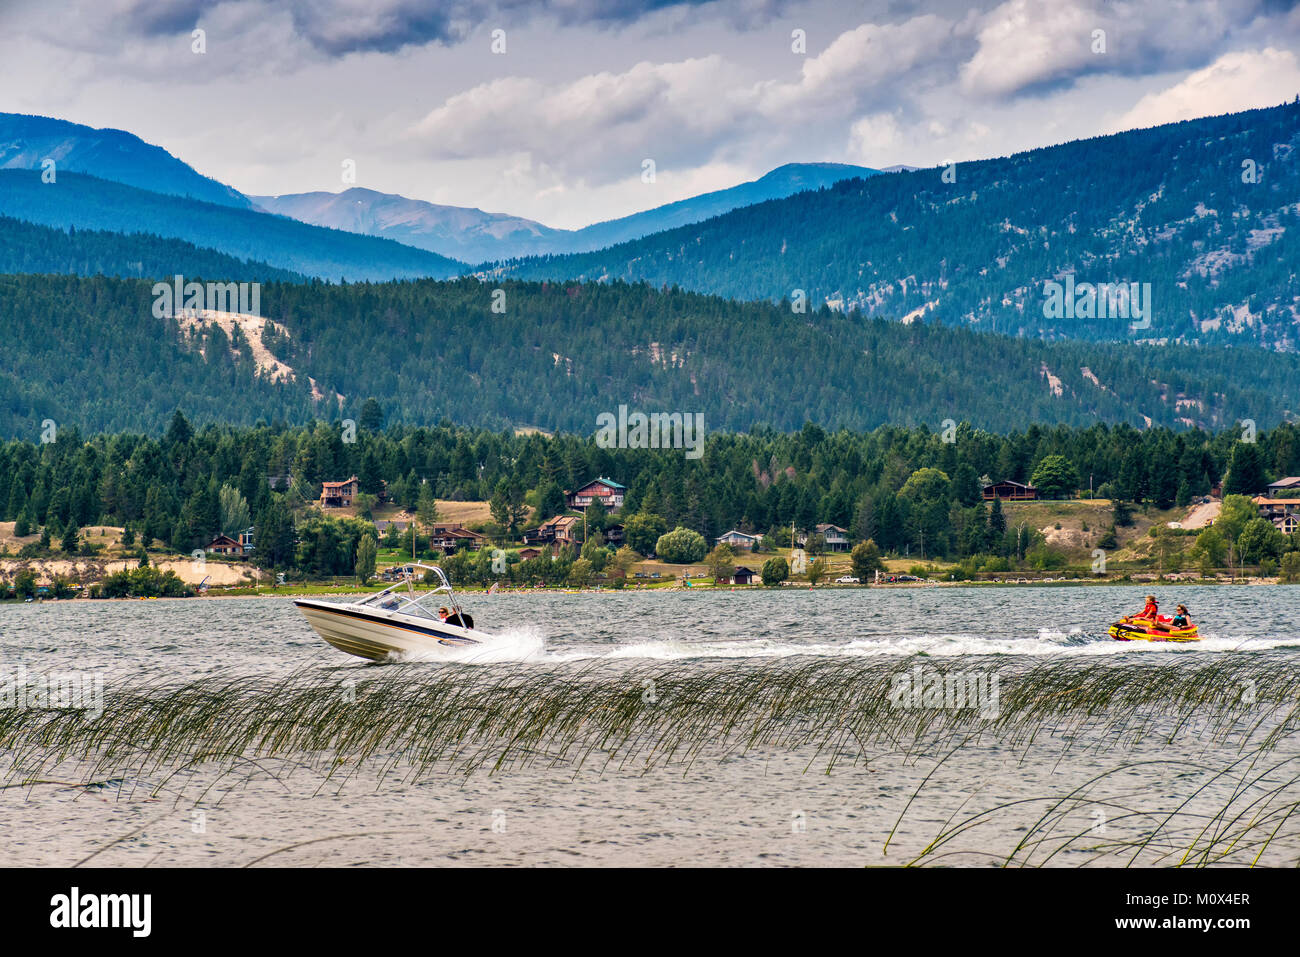 Speedboat pulling woman and young girl in rubber boat, Lake Windermere, Columbia Valley, Purcell Mountains, near - Stock Image